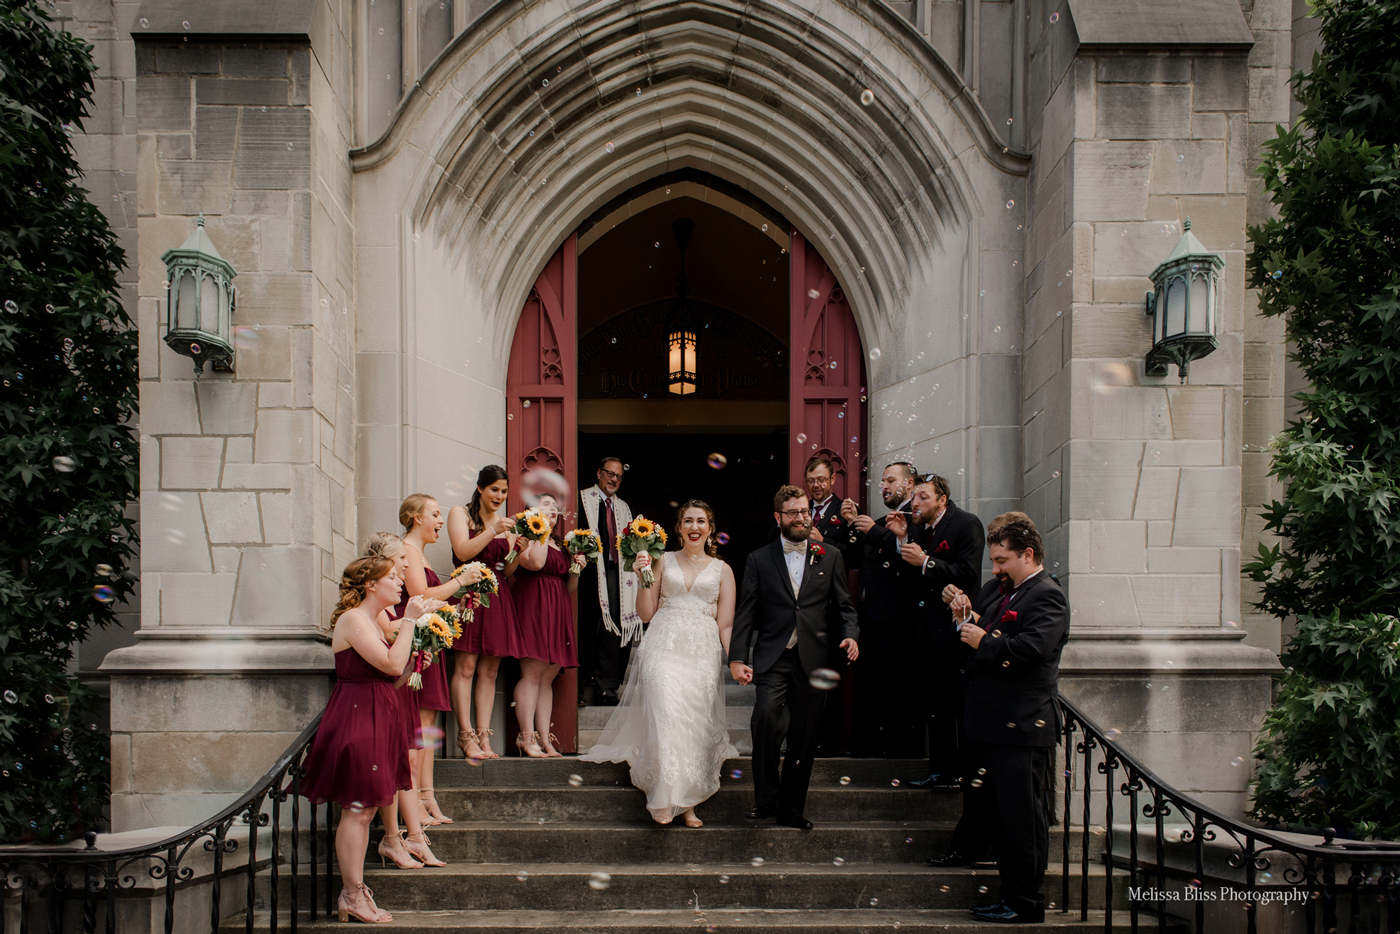 VA-wedding-photographer-bride-and-groom-exit-catherdral-wedding-ceremony-melissa-bliss-photography-norfolk-virginia-beach-williamsburg-richmond-photographer.jpg